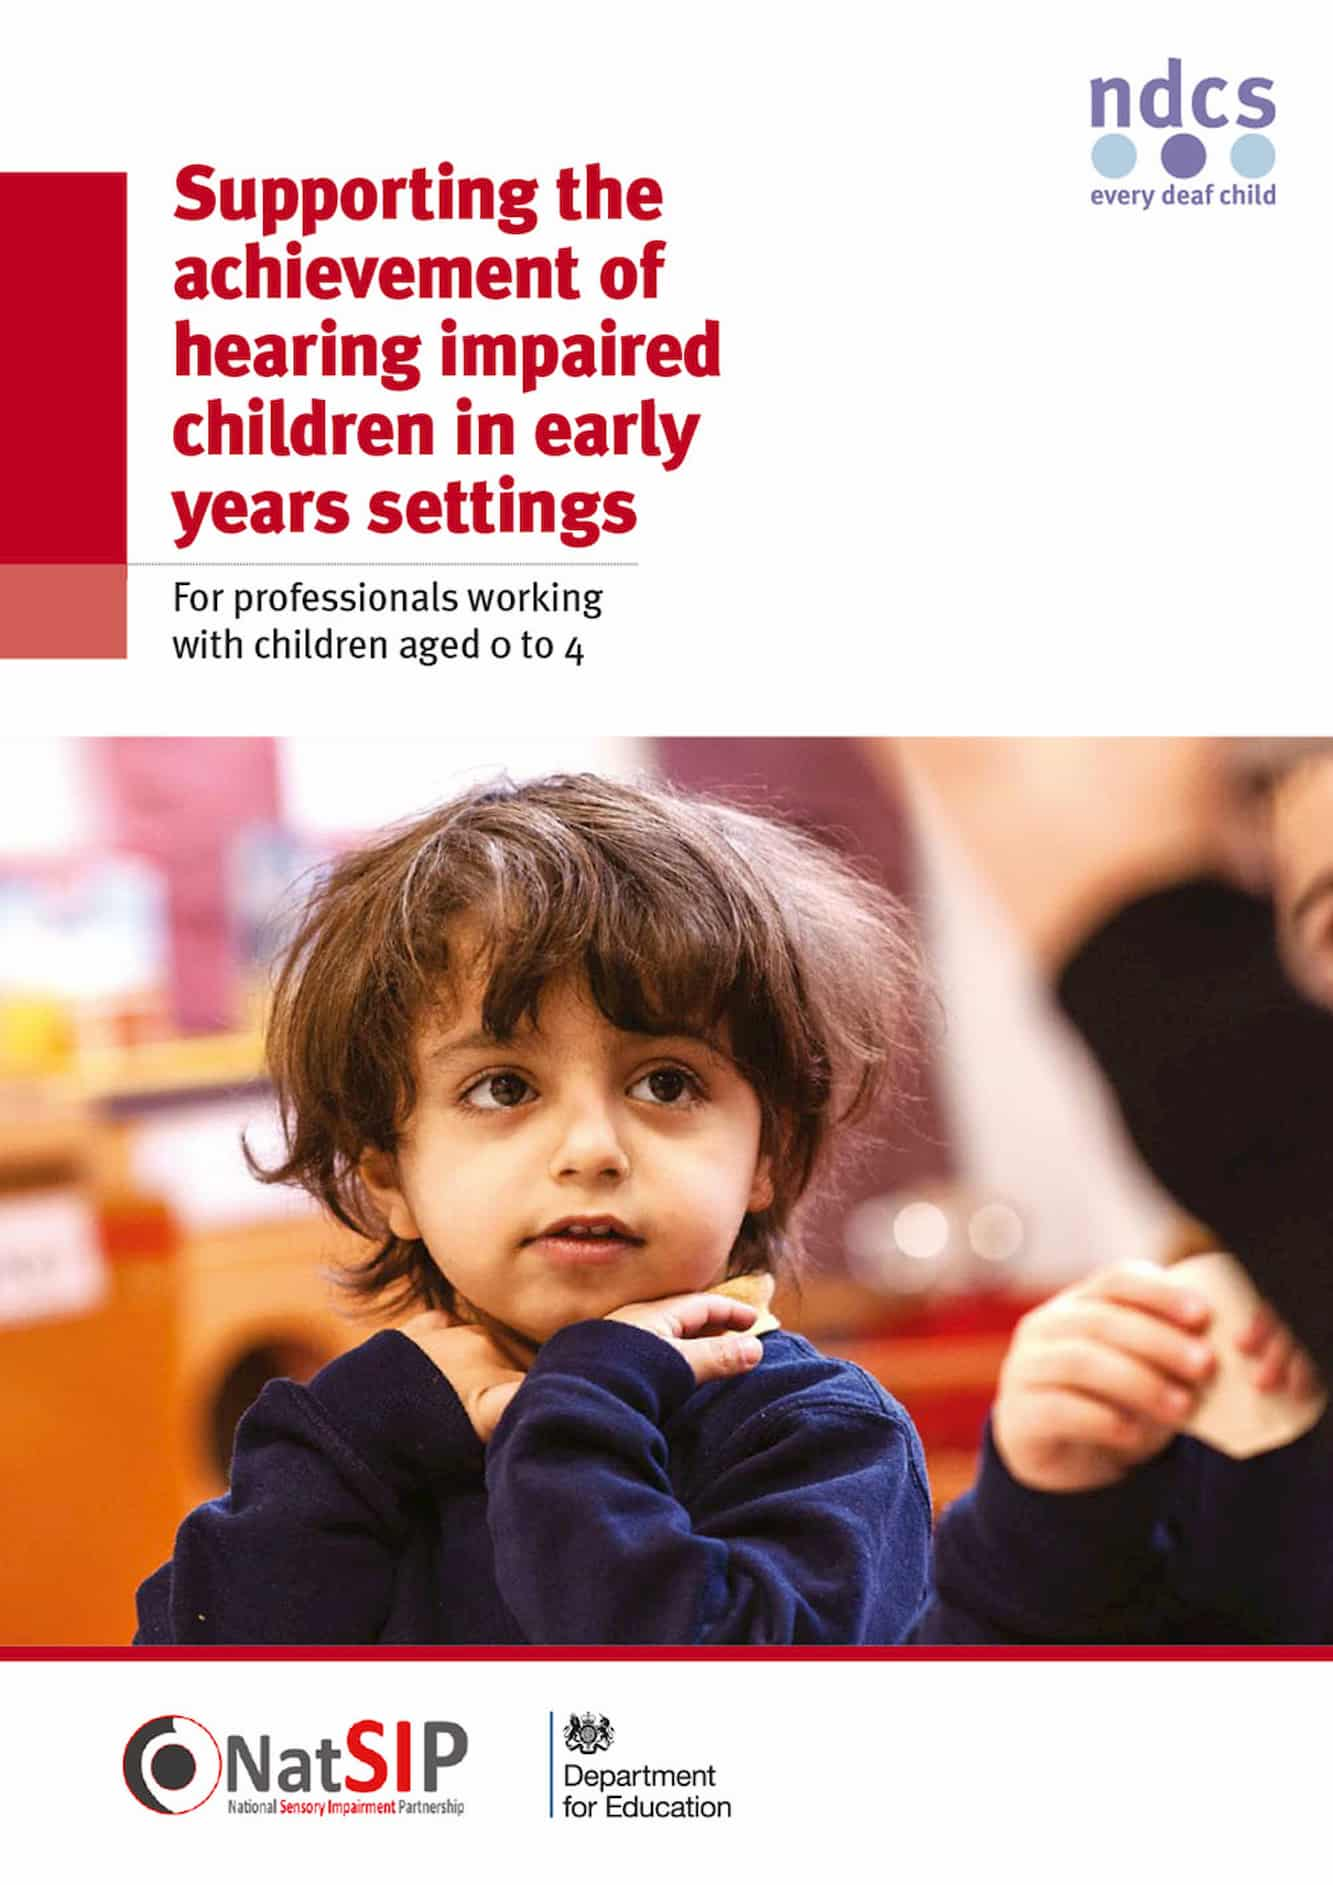 Supporting the achievement of hearing impaired children in early years settings